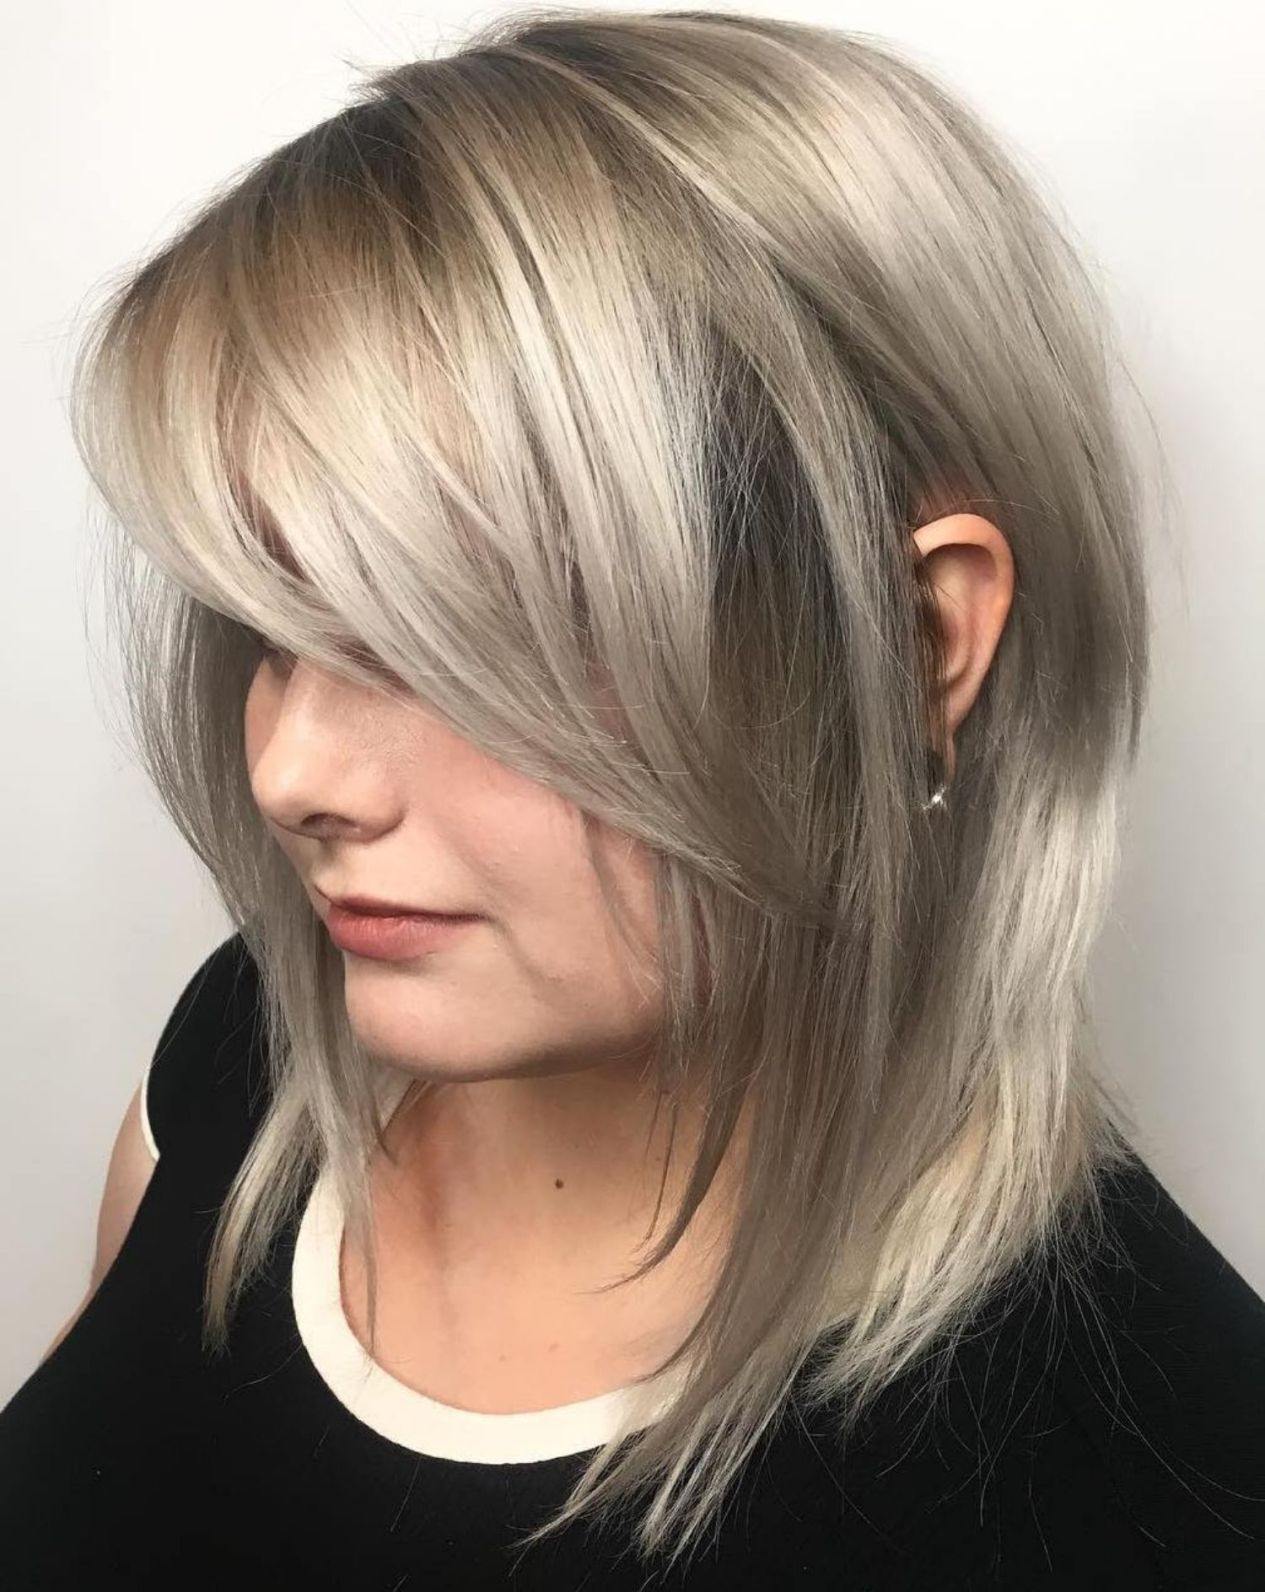 40 Side Swept Bangs To Sweep You Off Your Feet Medium Length Hair Styles Side Bangs Hairstyles Long Bob Hairstyles